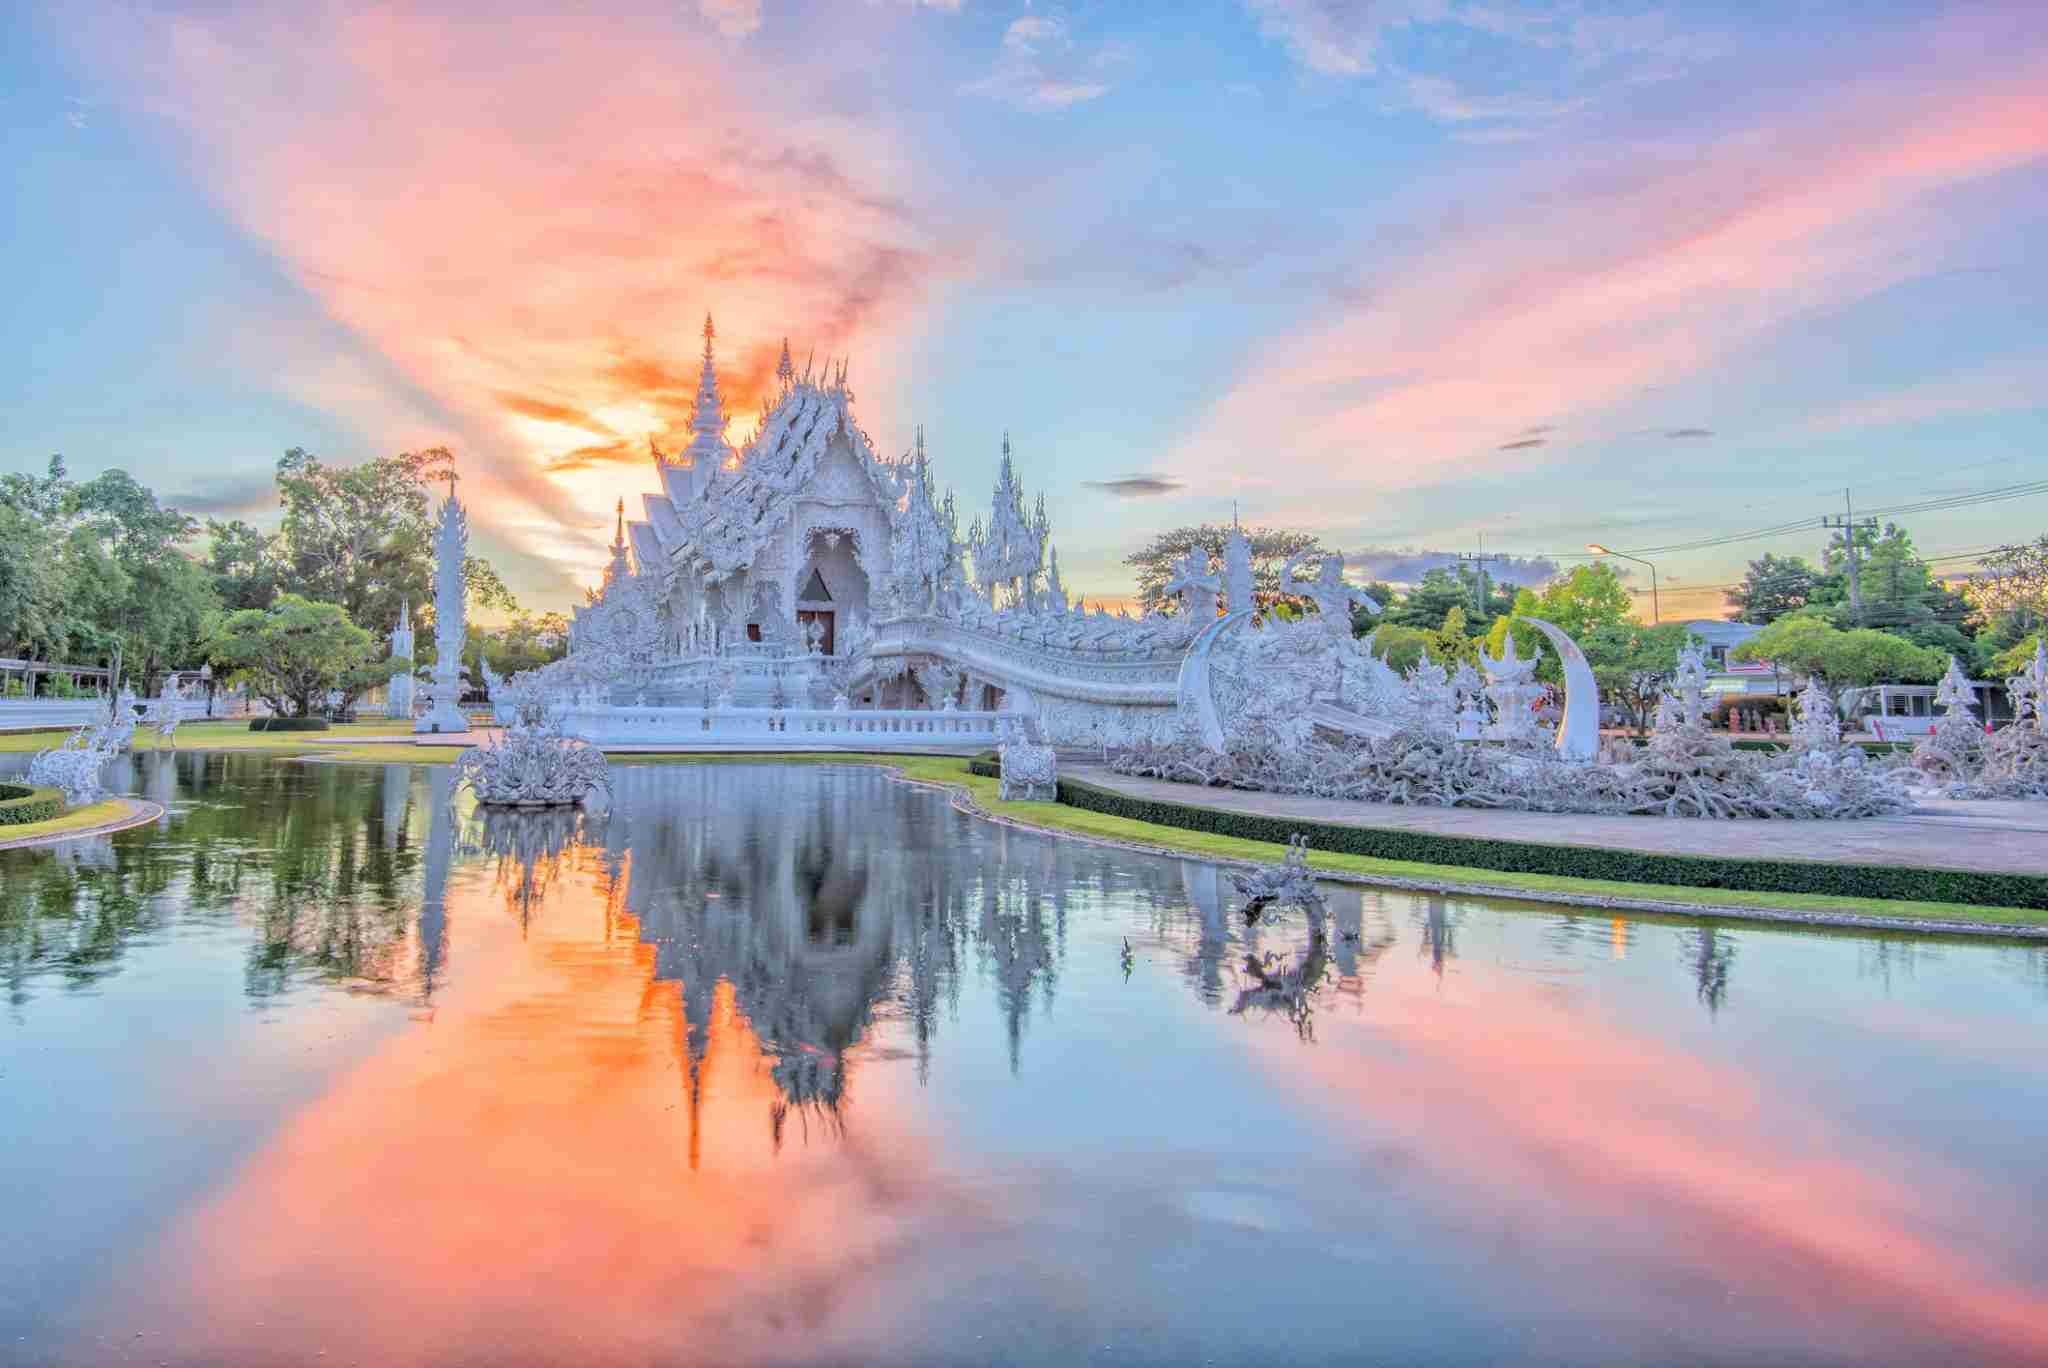 The White Temple. Photo by Supoj Buranaprapapong / Getty